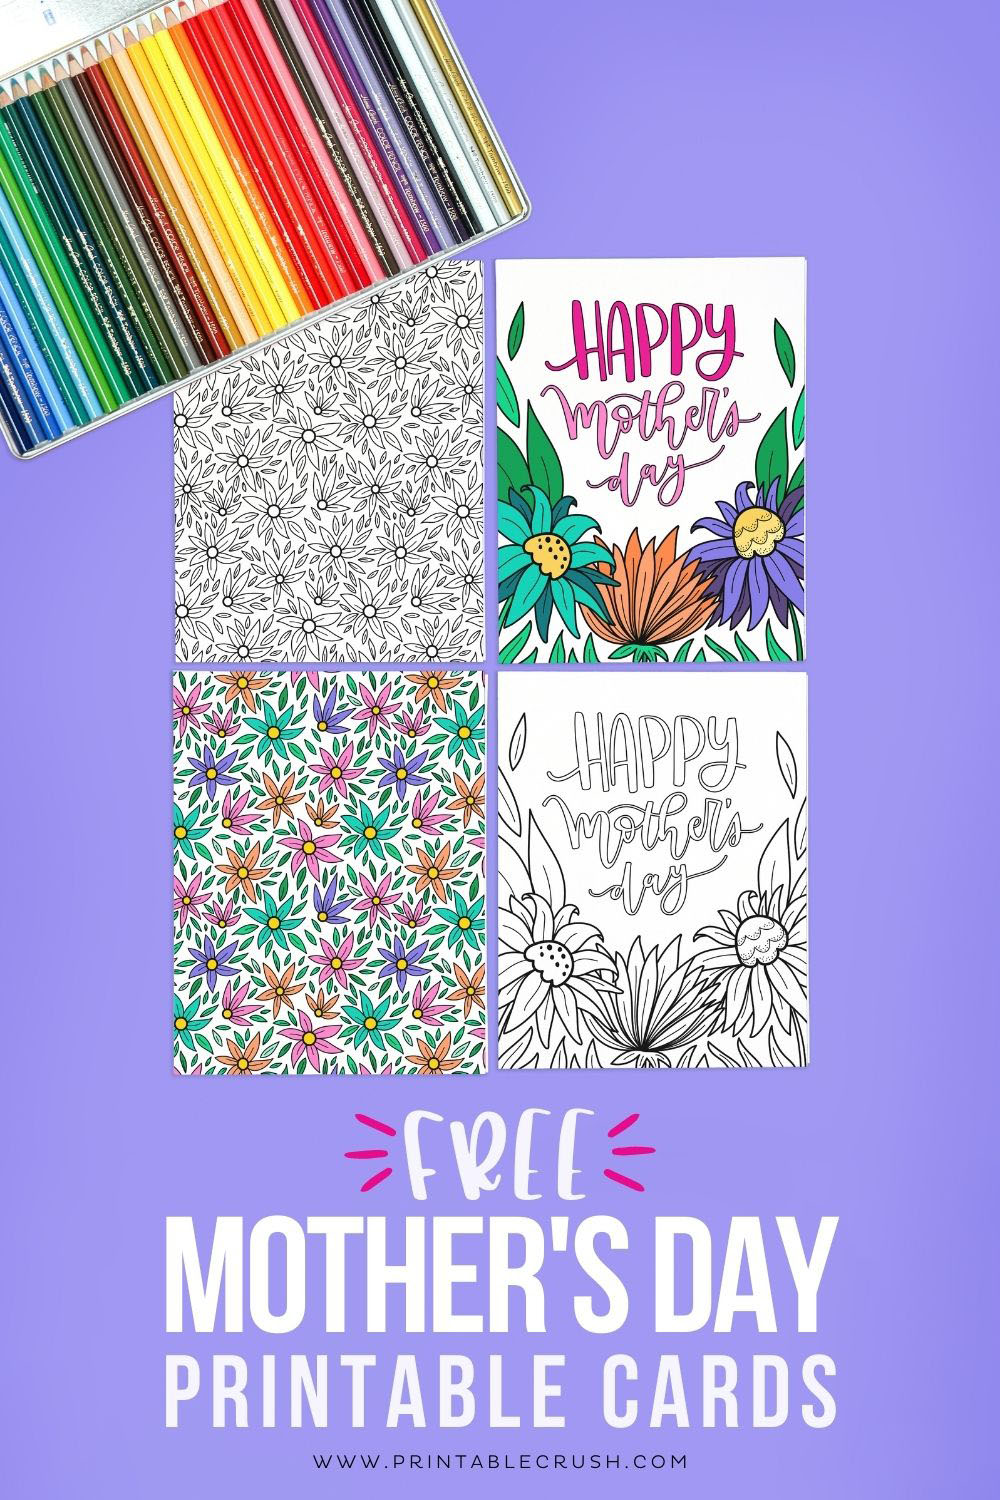 Free Mother's Day Printable Cards - Coloring Page Mother's Day Cards